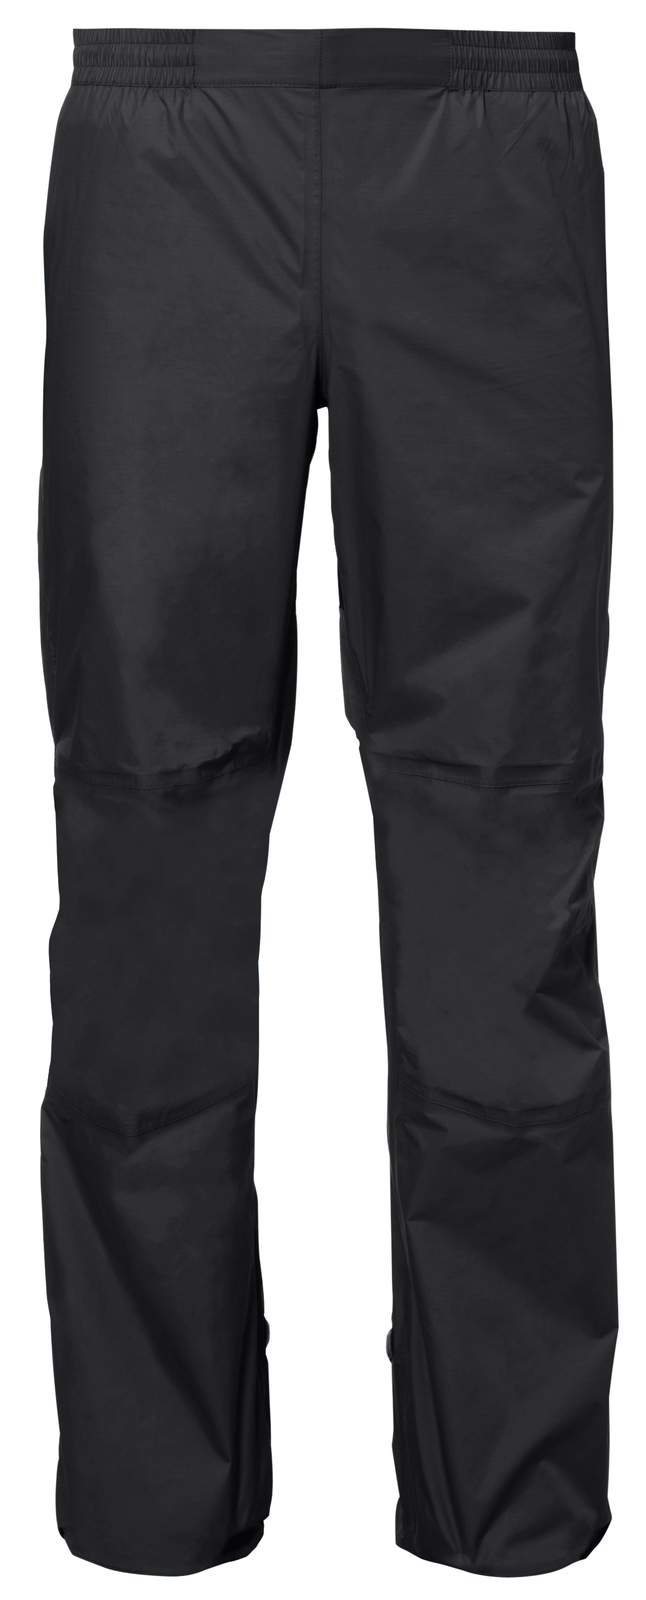 VAUDE Men´s Drop Pants II black Größe M-Long - schneider-sports